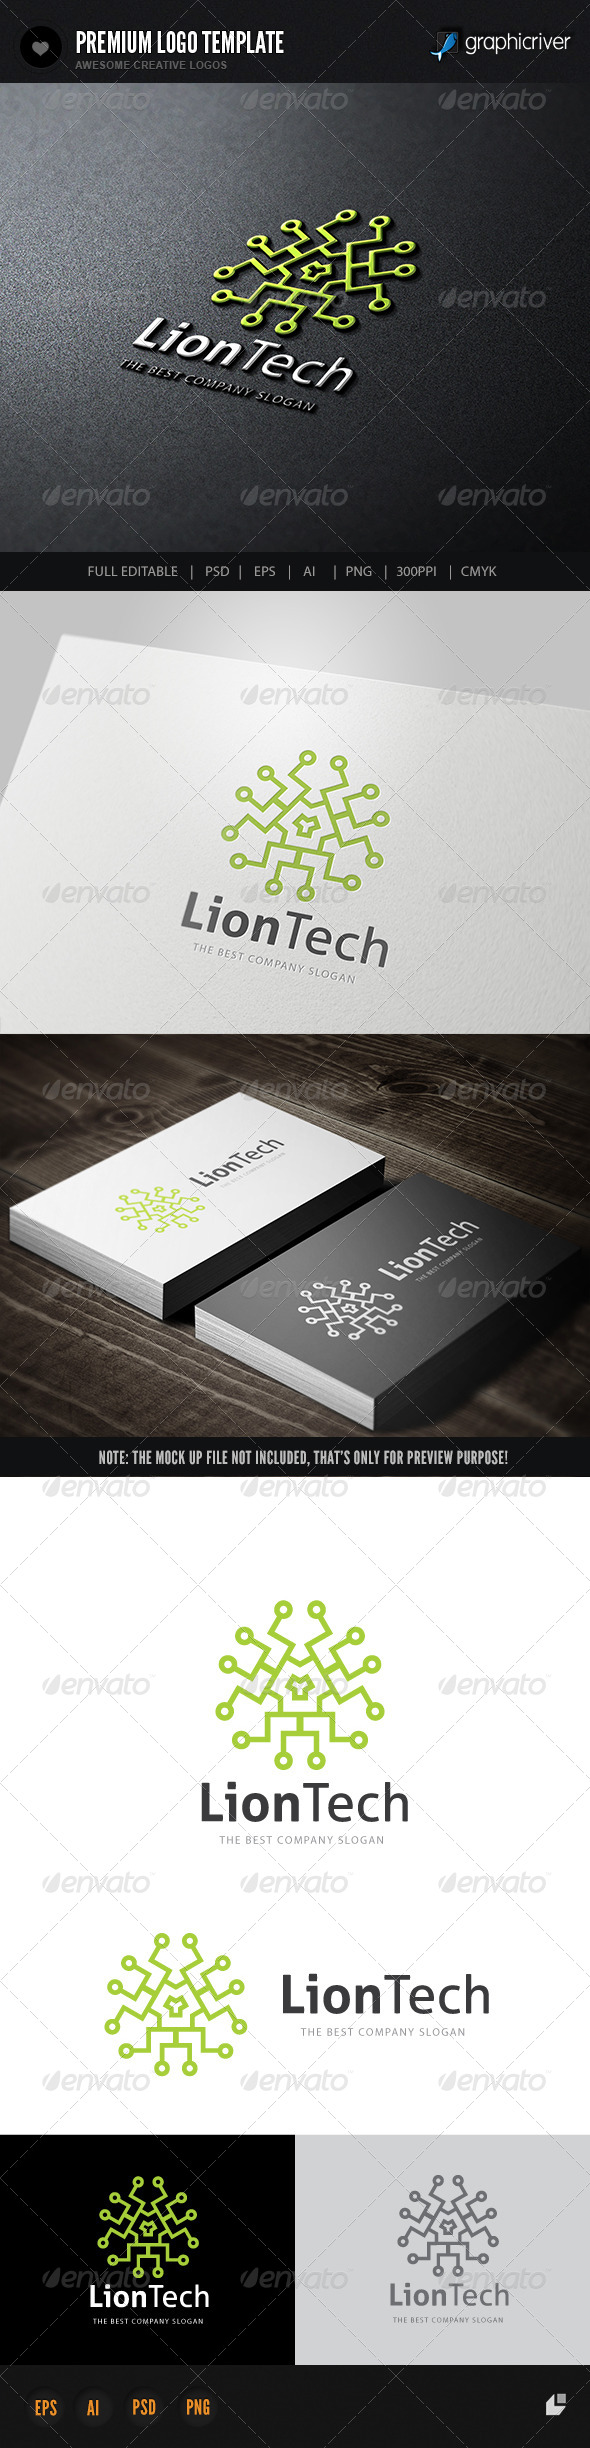 GraphicRiver Lion Tech 6755109